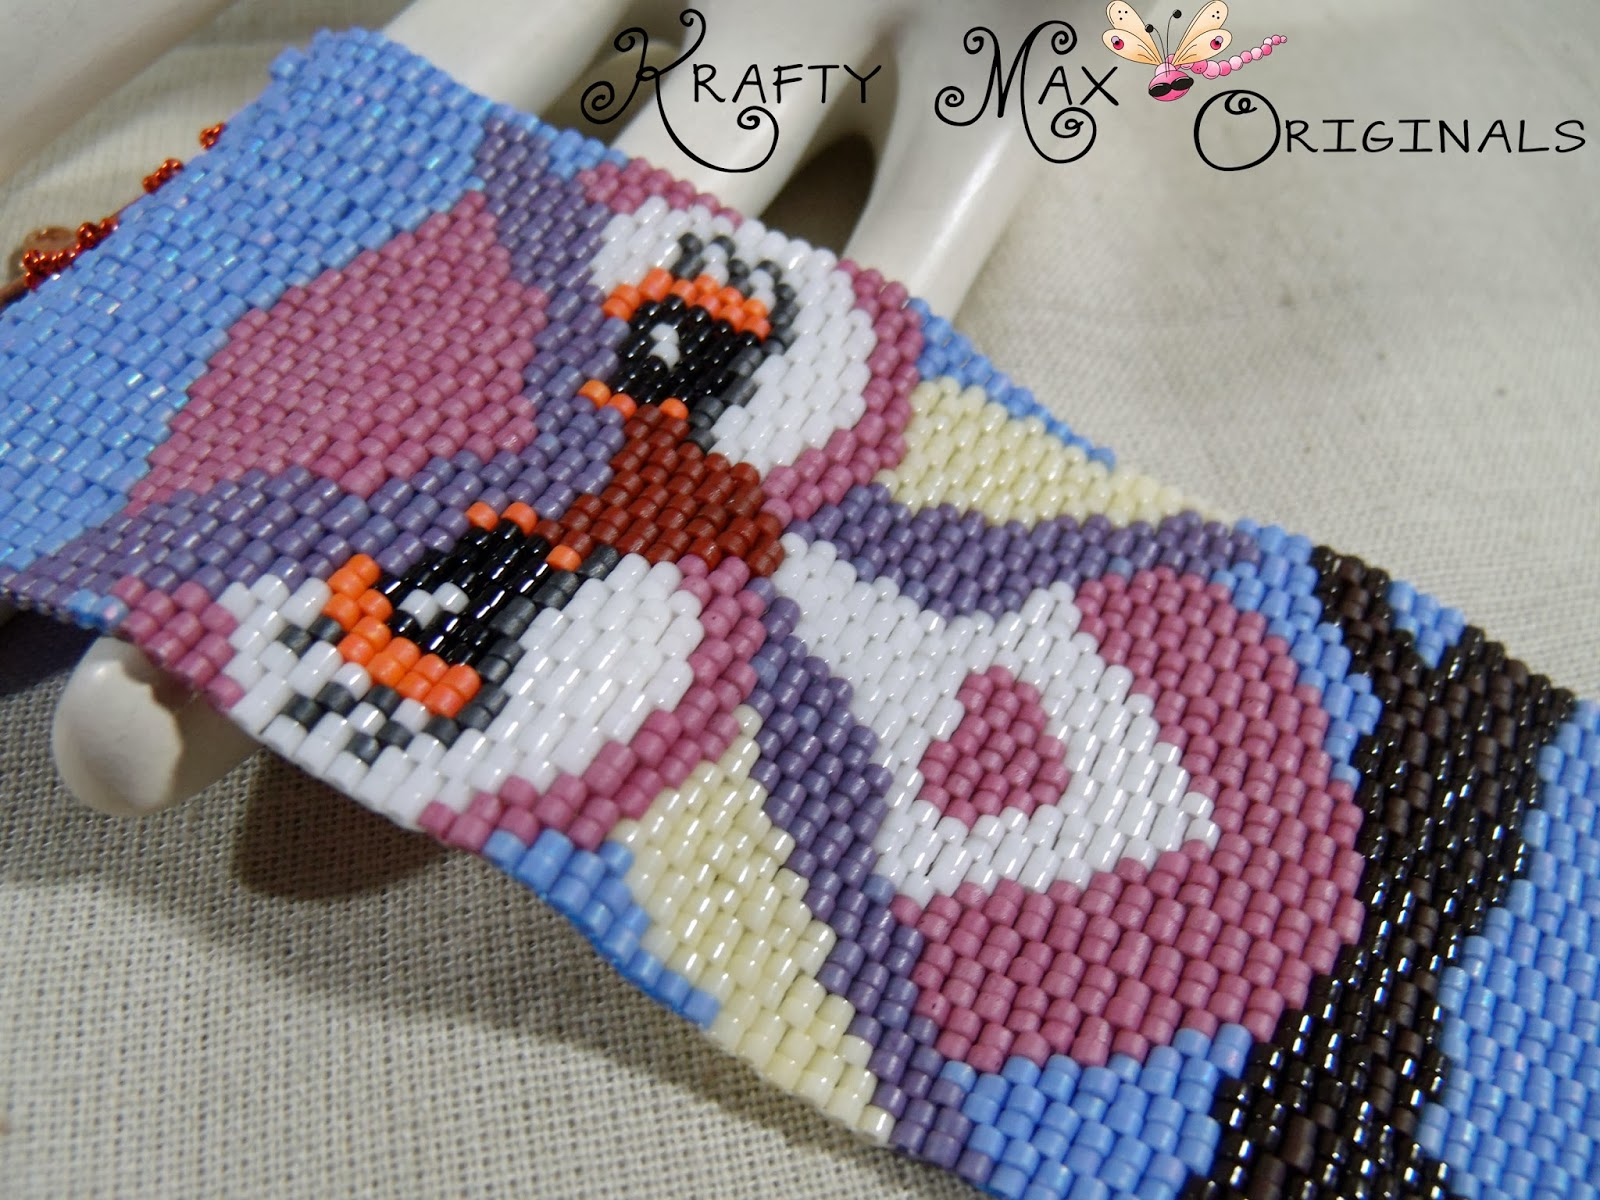 http://www.artfire.com/ext/shop/product_view/KraftyMax/8533617/peaceful_owl_and_a_branch_handmade_beadwoven_bracelet/handmade/jewelry/bracelets/beadwork